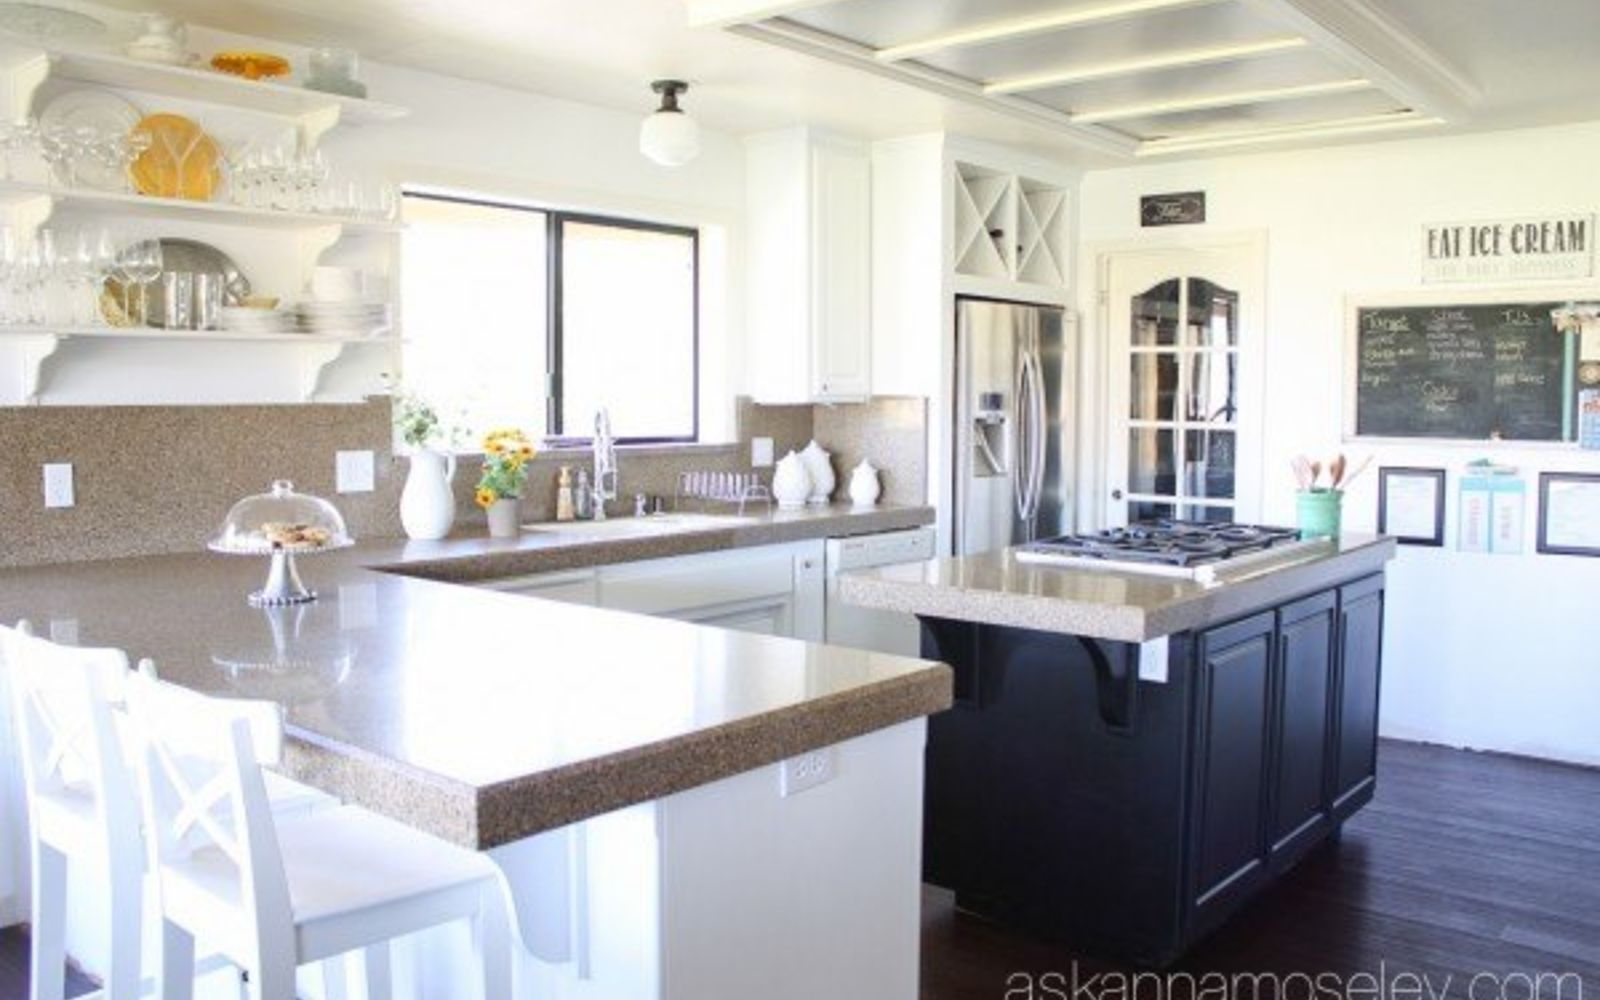 s 13 kitchen paint colors people are pinning like crazy, kitchen design, paint colors, Differentiate cabinets with black and white